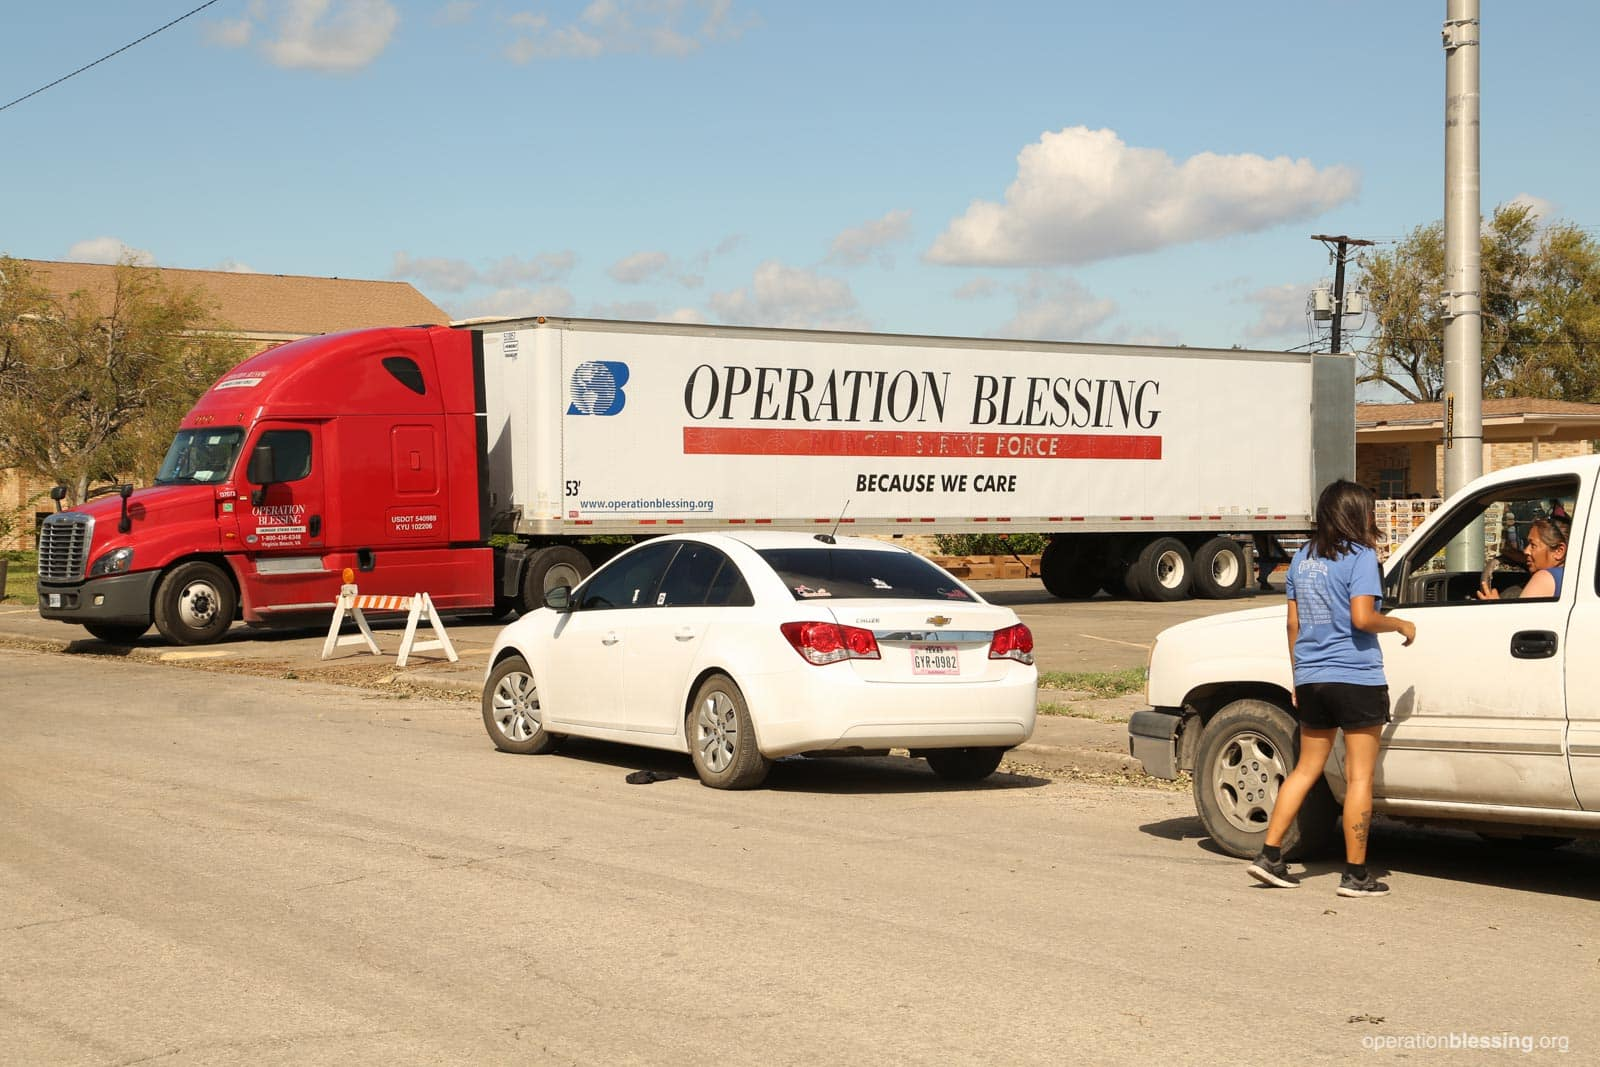 An OBI semi-truck delivers emergency relief supplies in Texas.